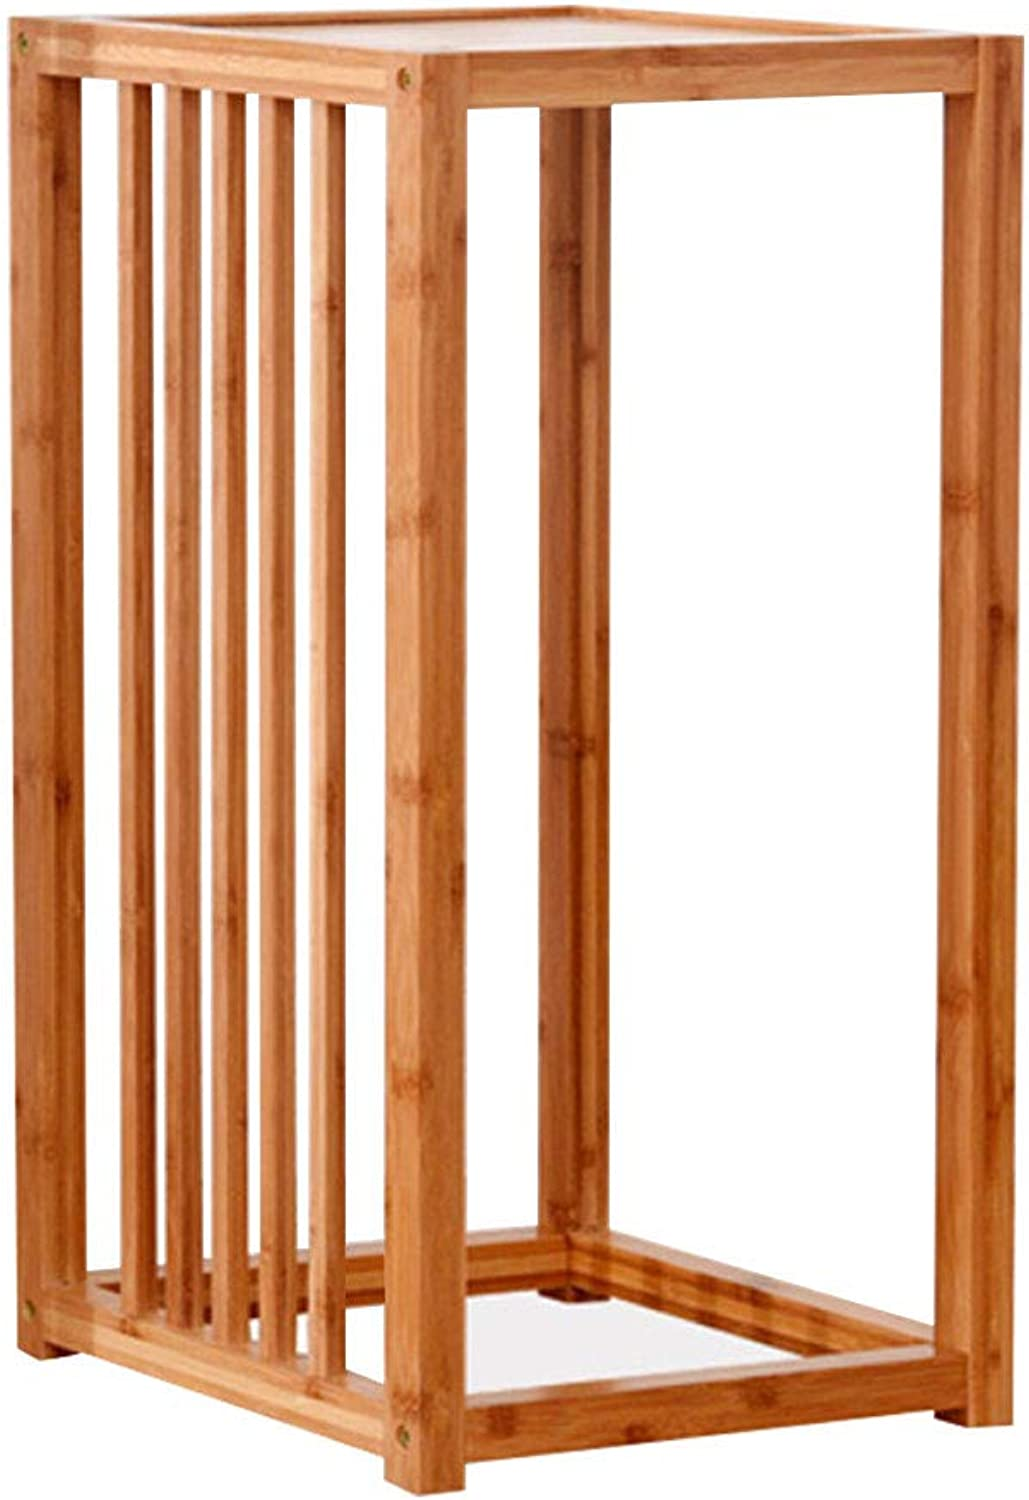 Plants Display,1-3 Shelf Multi Function Household Wooden Plant Flower Display Stand Household Products (Size   62x26.5)